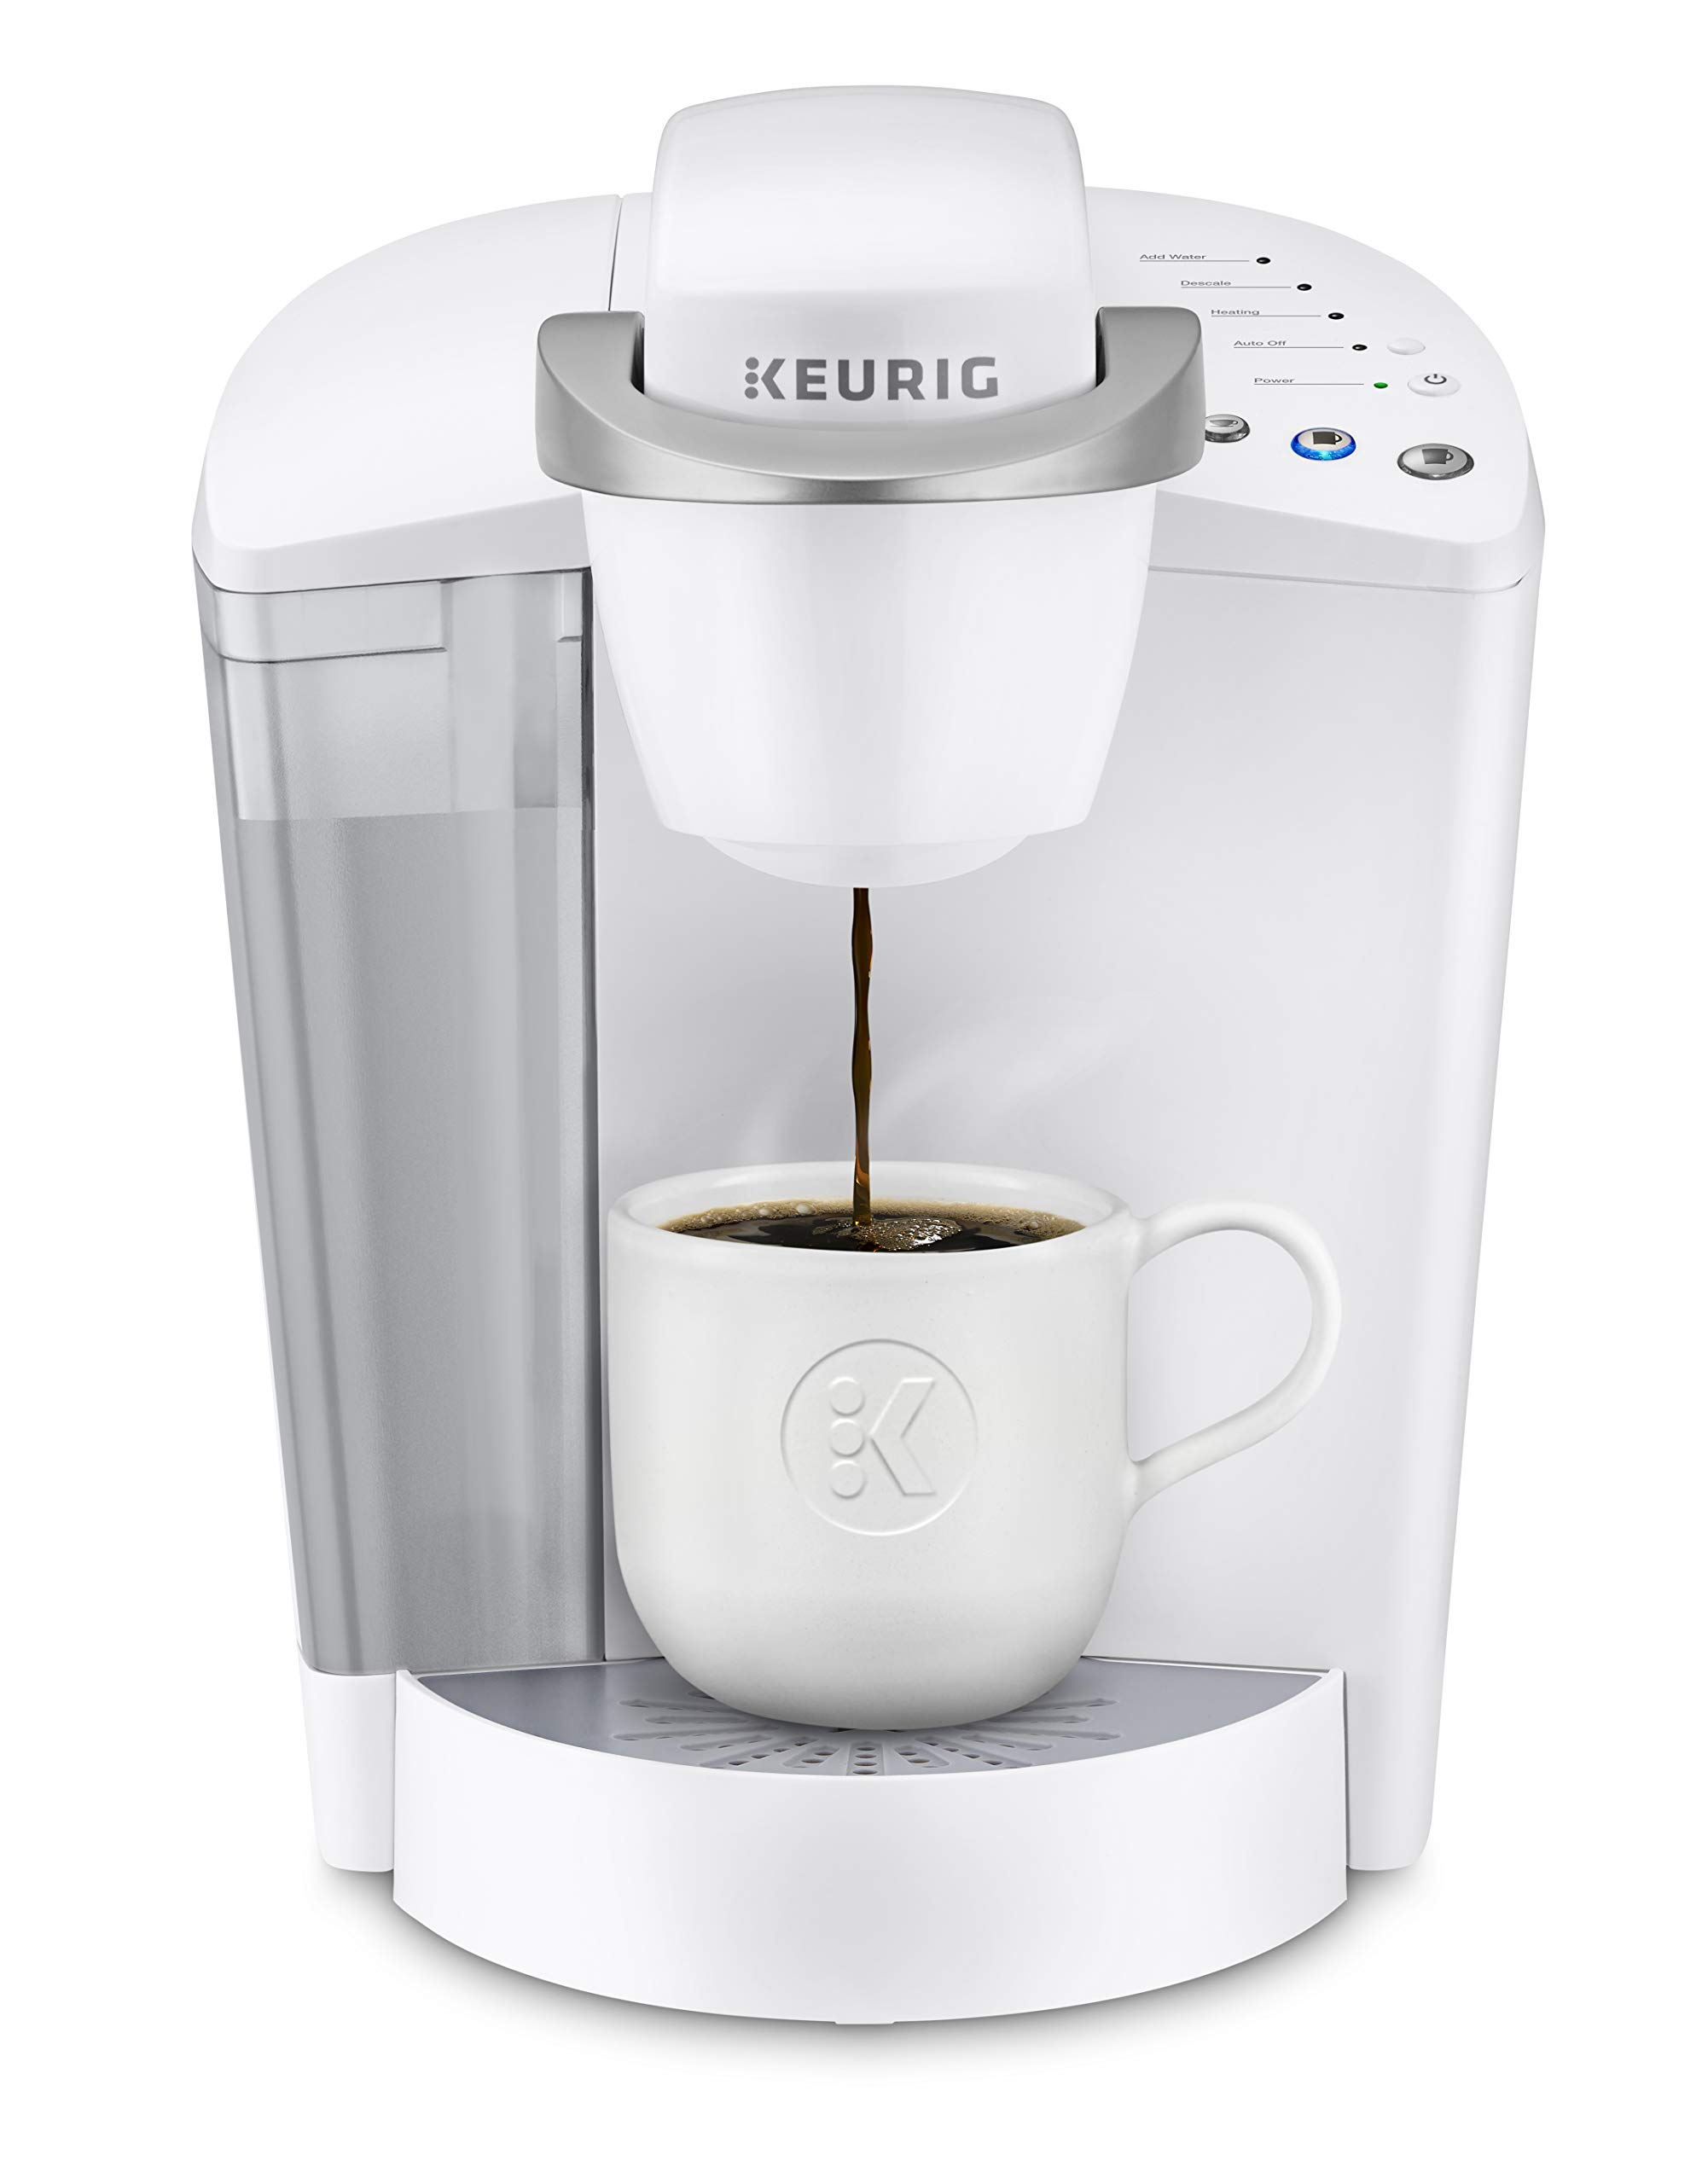 Keurig K-Classic Coffee Maker, K-Cup Pod, Single Serve, Programmable, White